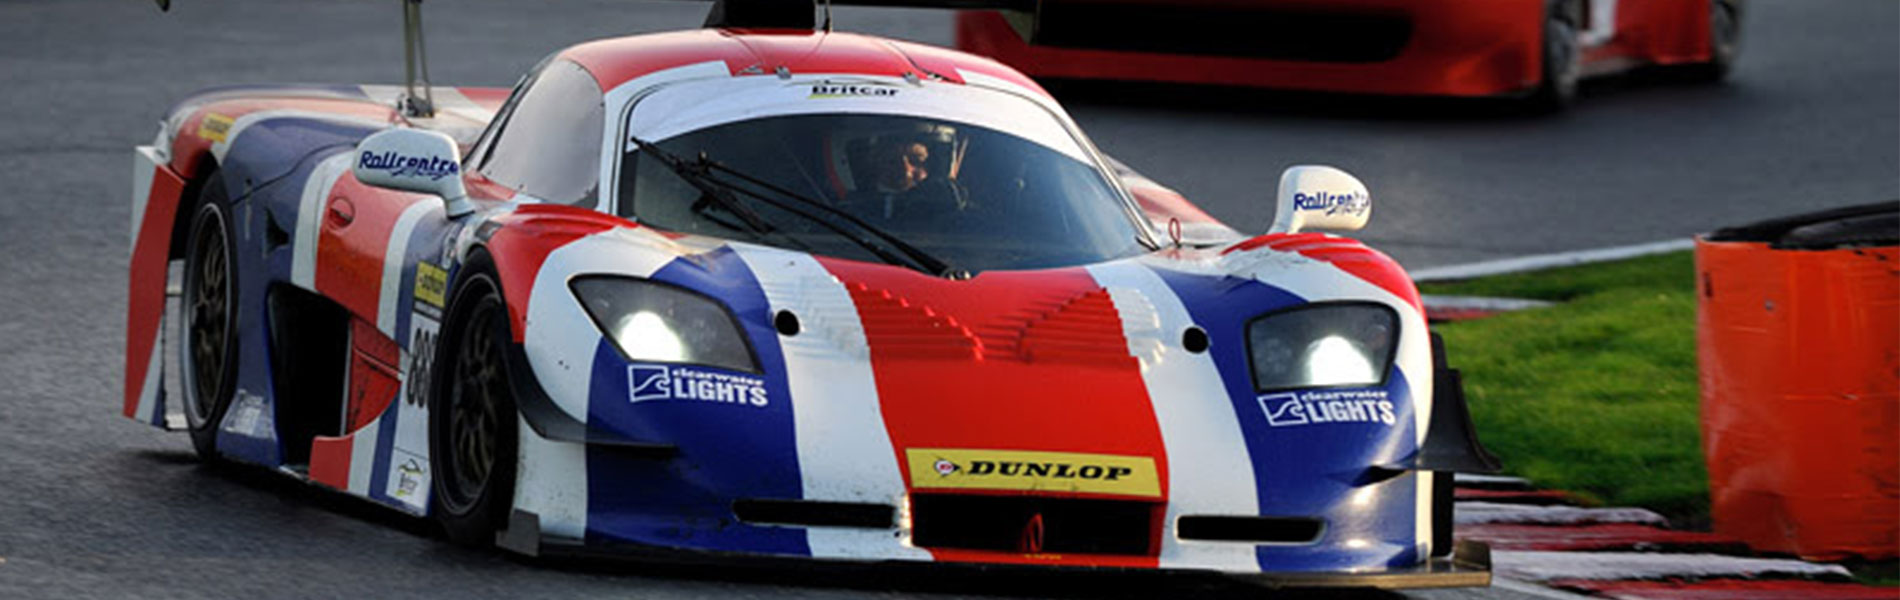 neary-nails-it-in-martins-mothballed-mosler-motorsportdays-test-days-2